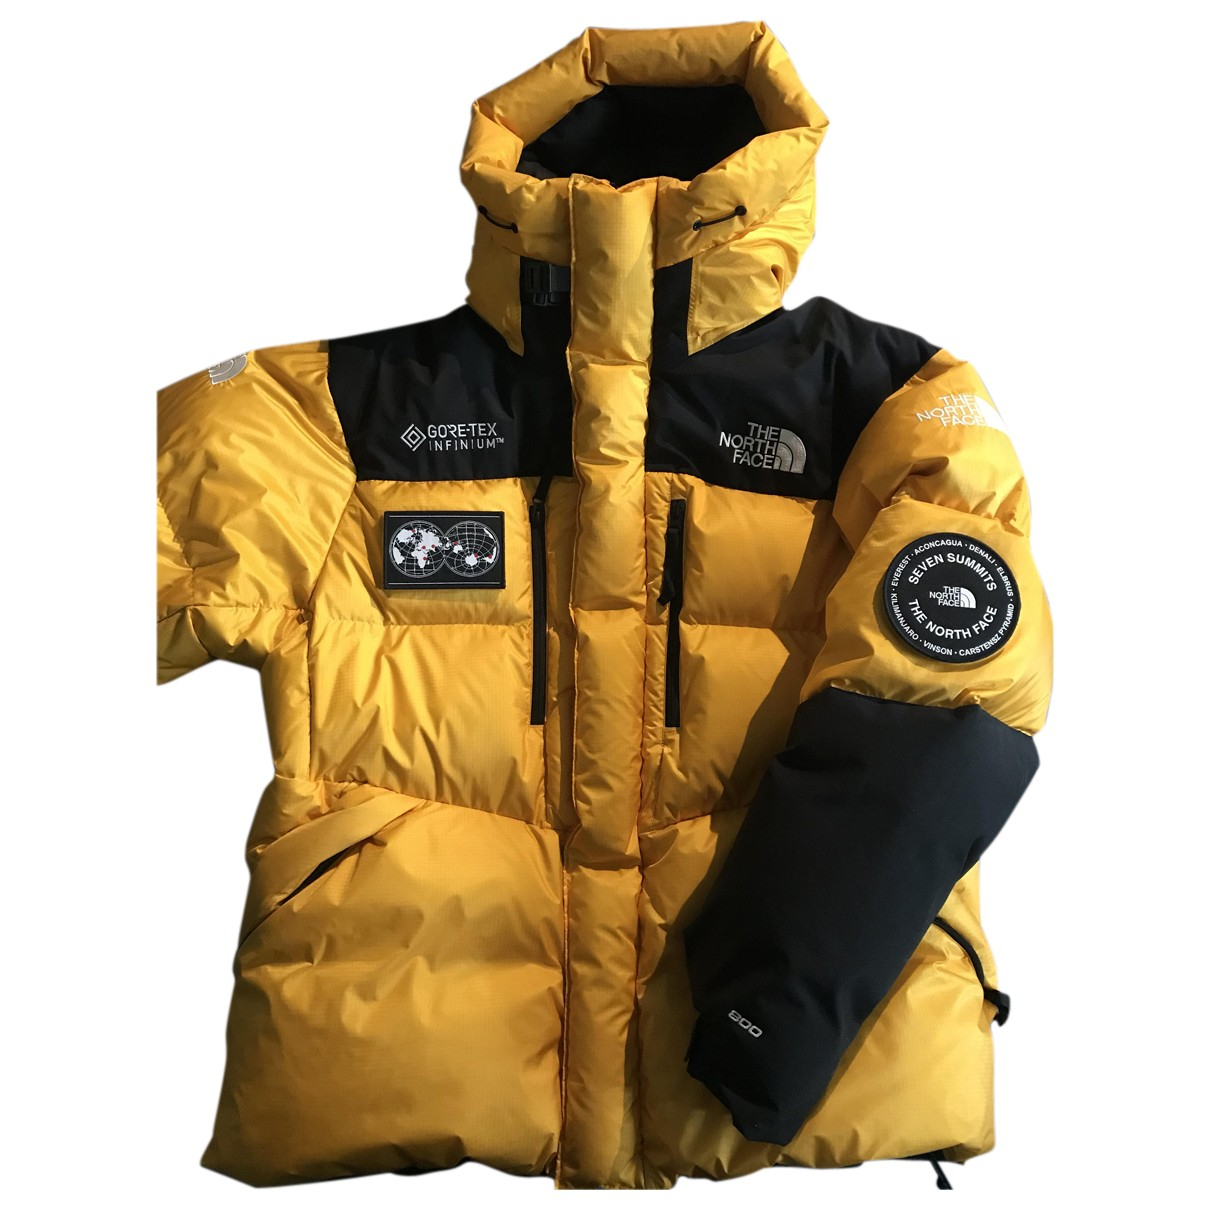 The North Face N Yellow jacket  for Men XL International